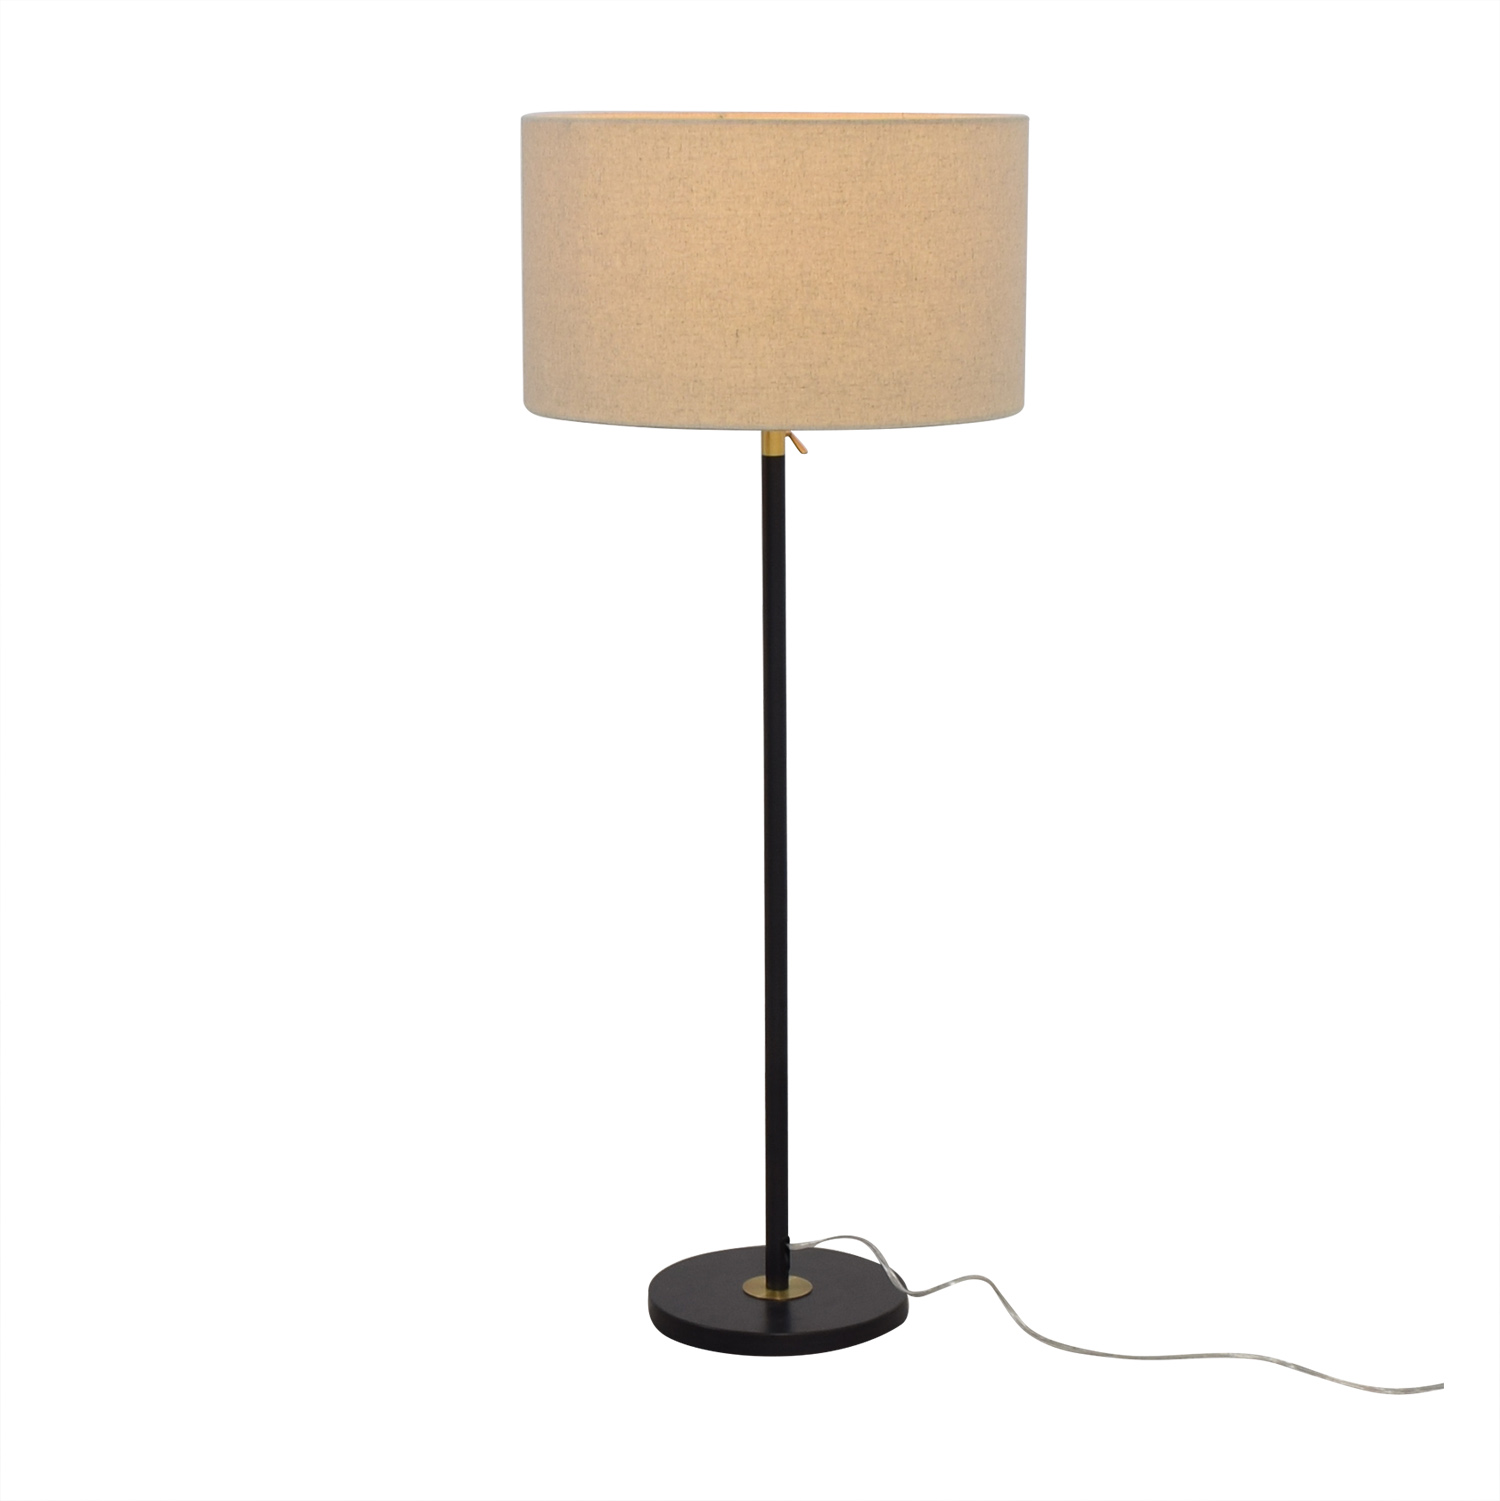 55 Off West Elm West Elm Telescoping Floor Lamp Decor